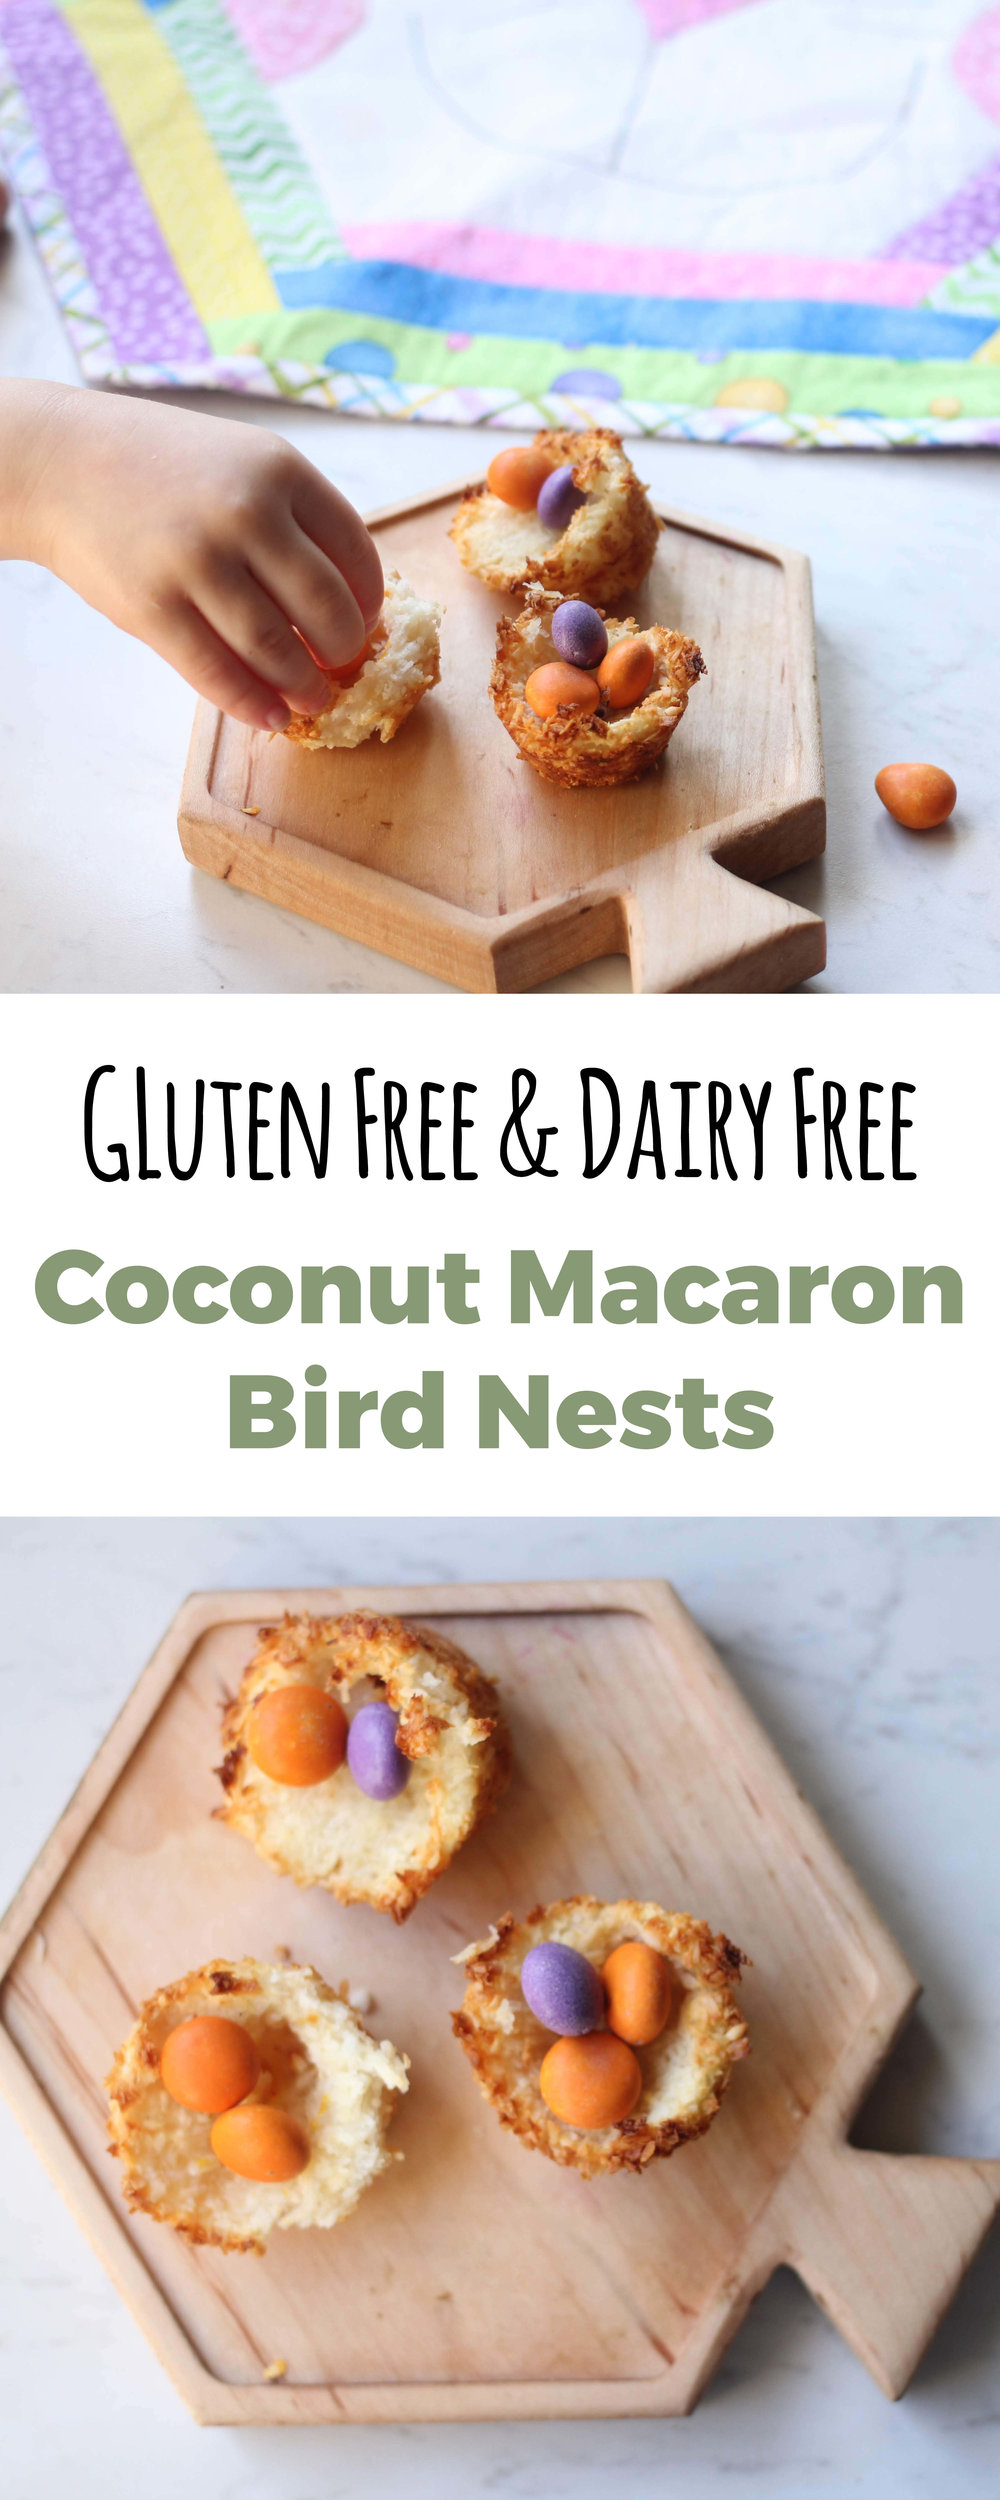 A fun and simple snacktivity to do with your kiddos to celebrate Spring. This is gluten free and dairy free with low sugar.